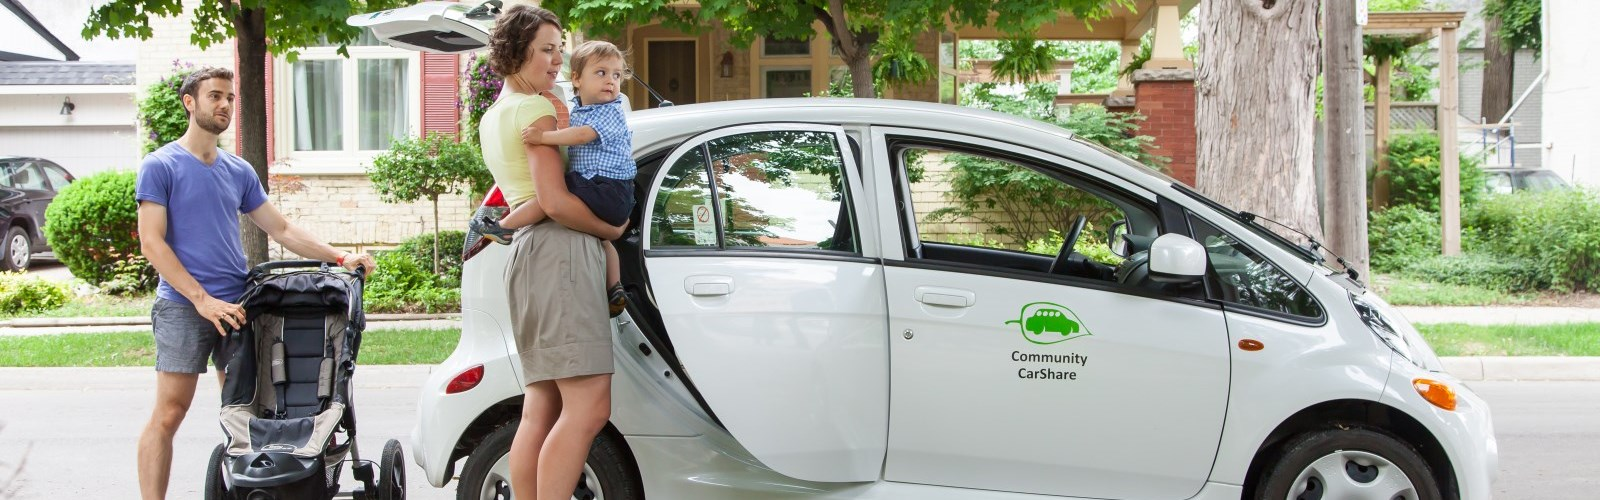 A picture of a young couple with a baby getting into a Community CarShare vehicle